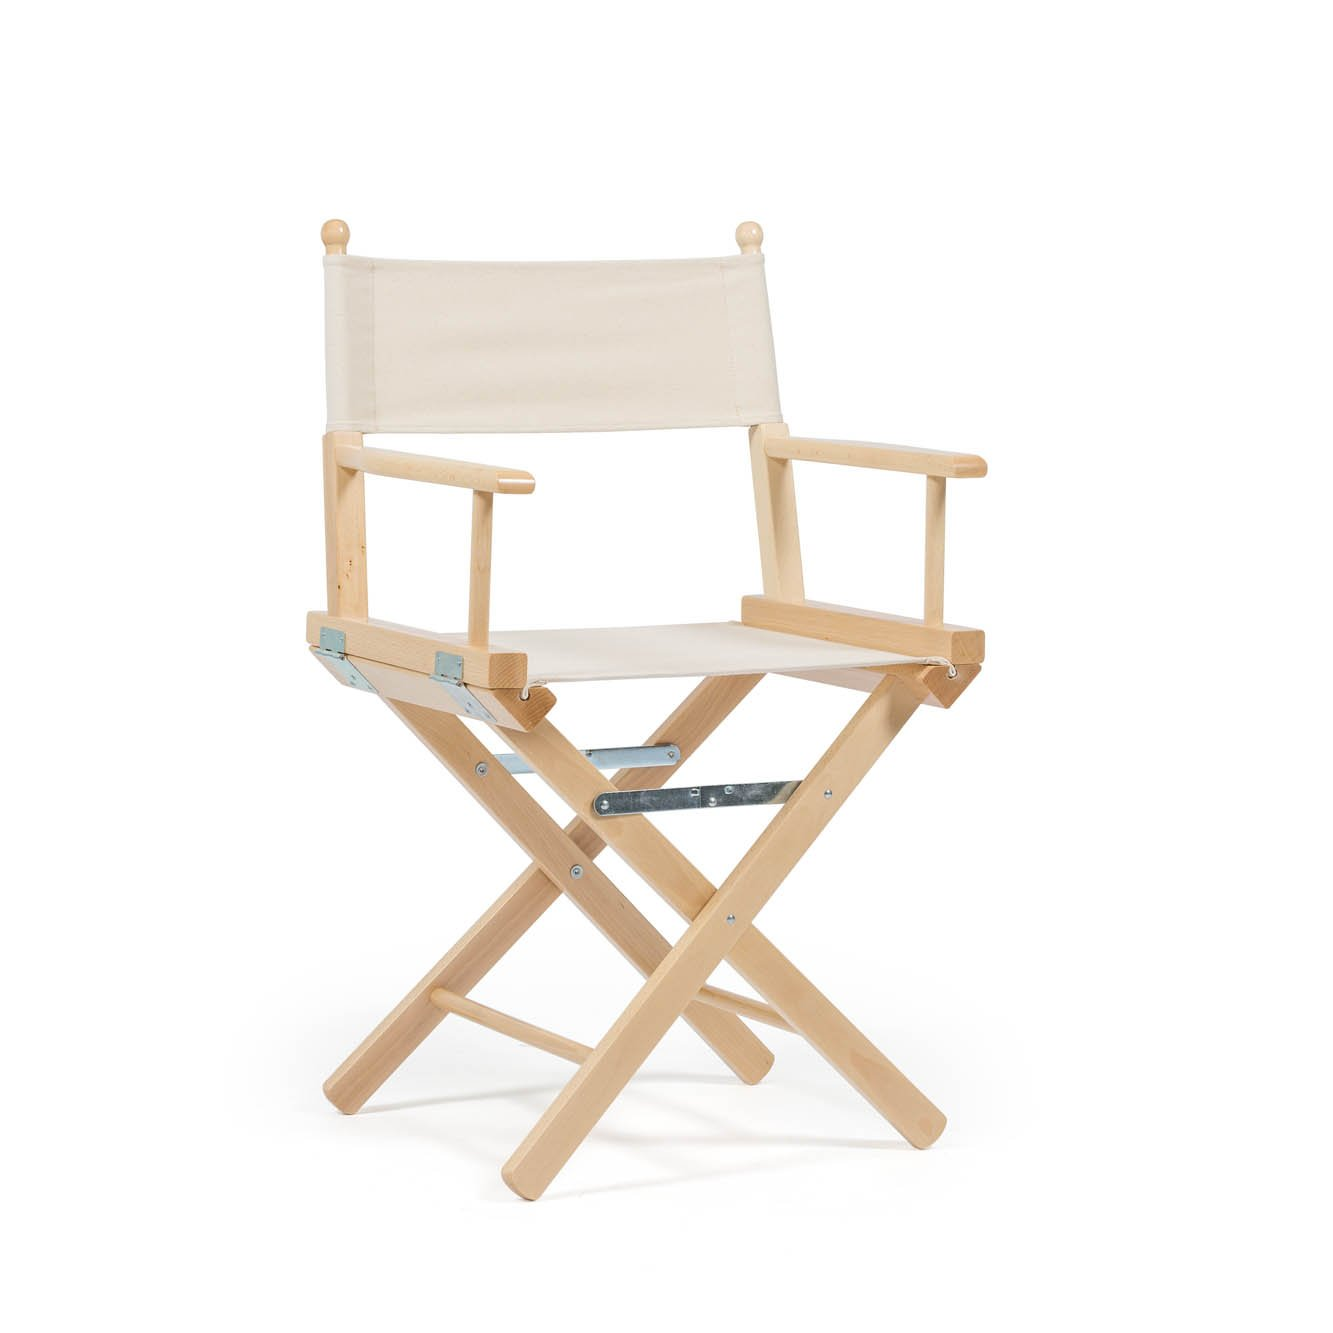 Telami Outlet Folding Beech Wooden Directors Chair Made in Italy - Original Ecru Colour on Natural Cotton Fabric for Outdoor Furniture - 52x46x91,5 cm